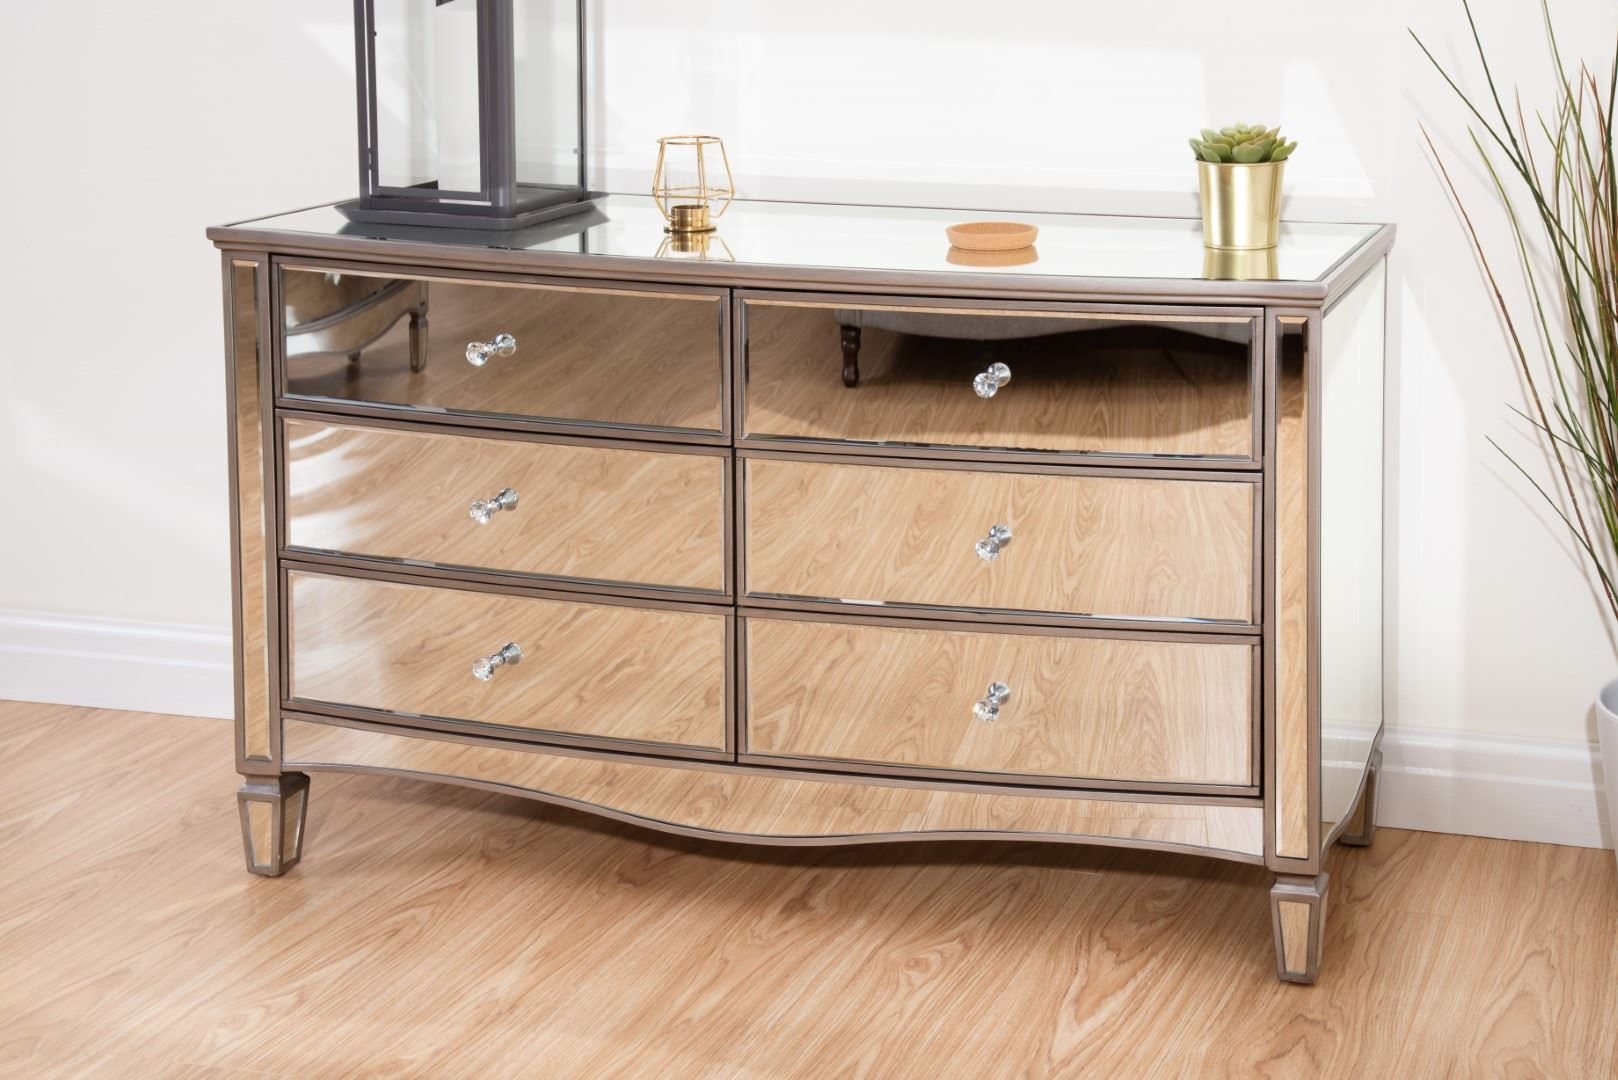 Birlea Elysee Mirrored 6 Drawer Large Mirror Furniture Chest Crystal Handle